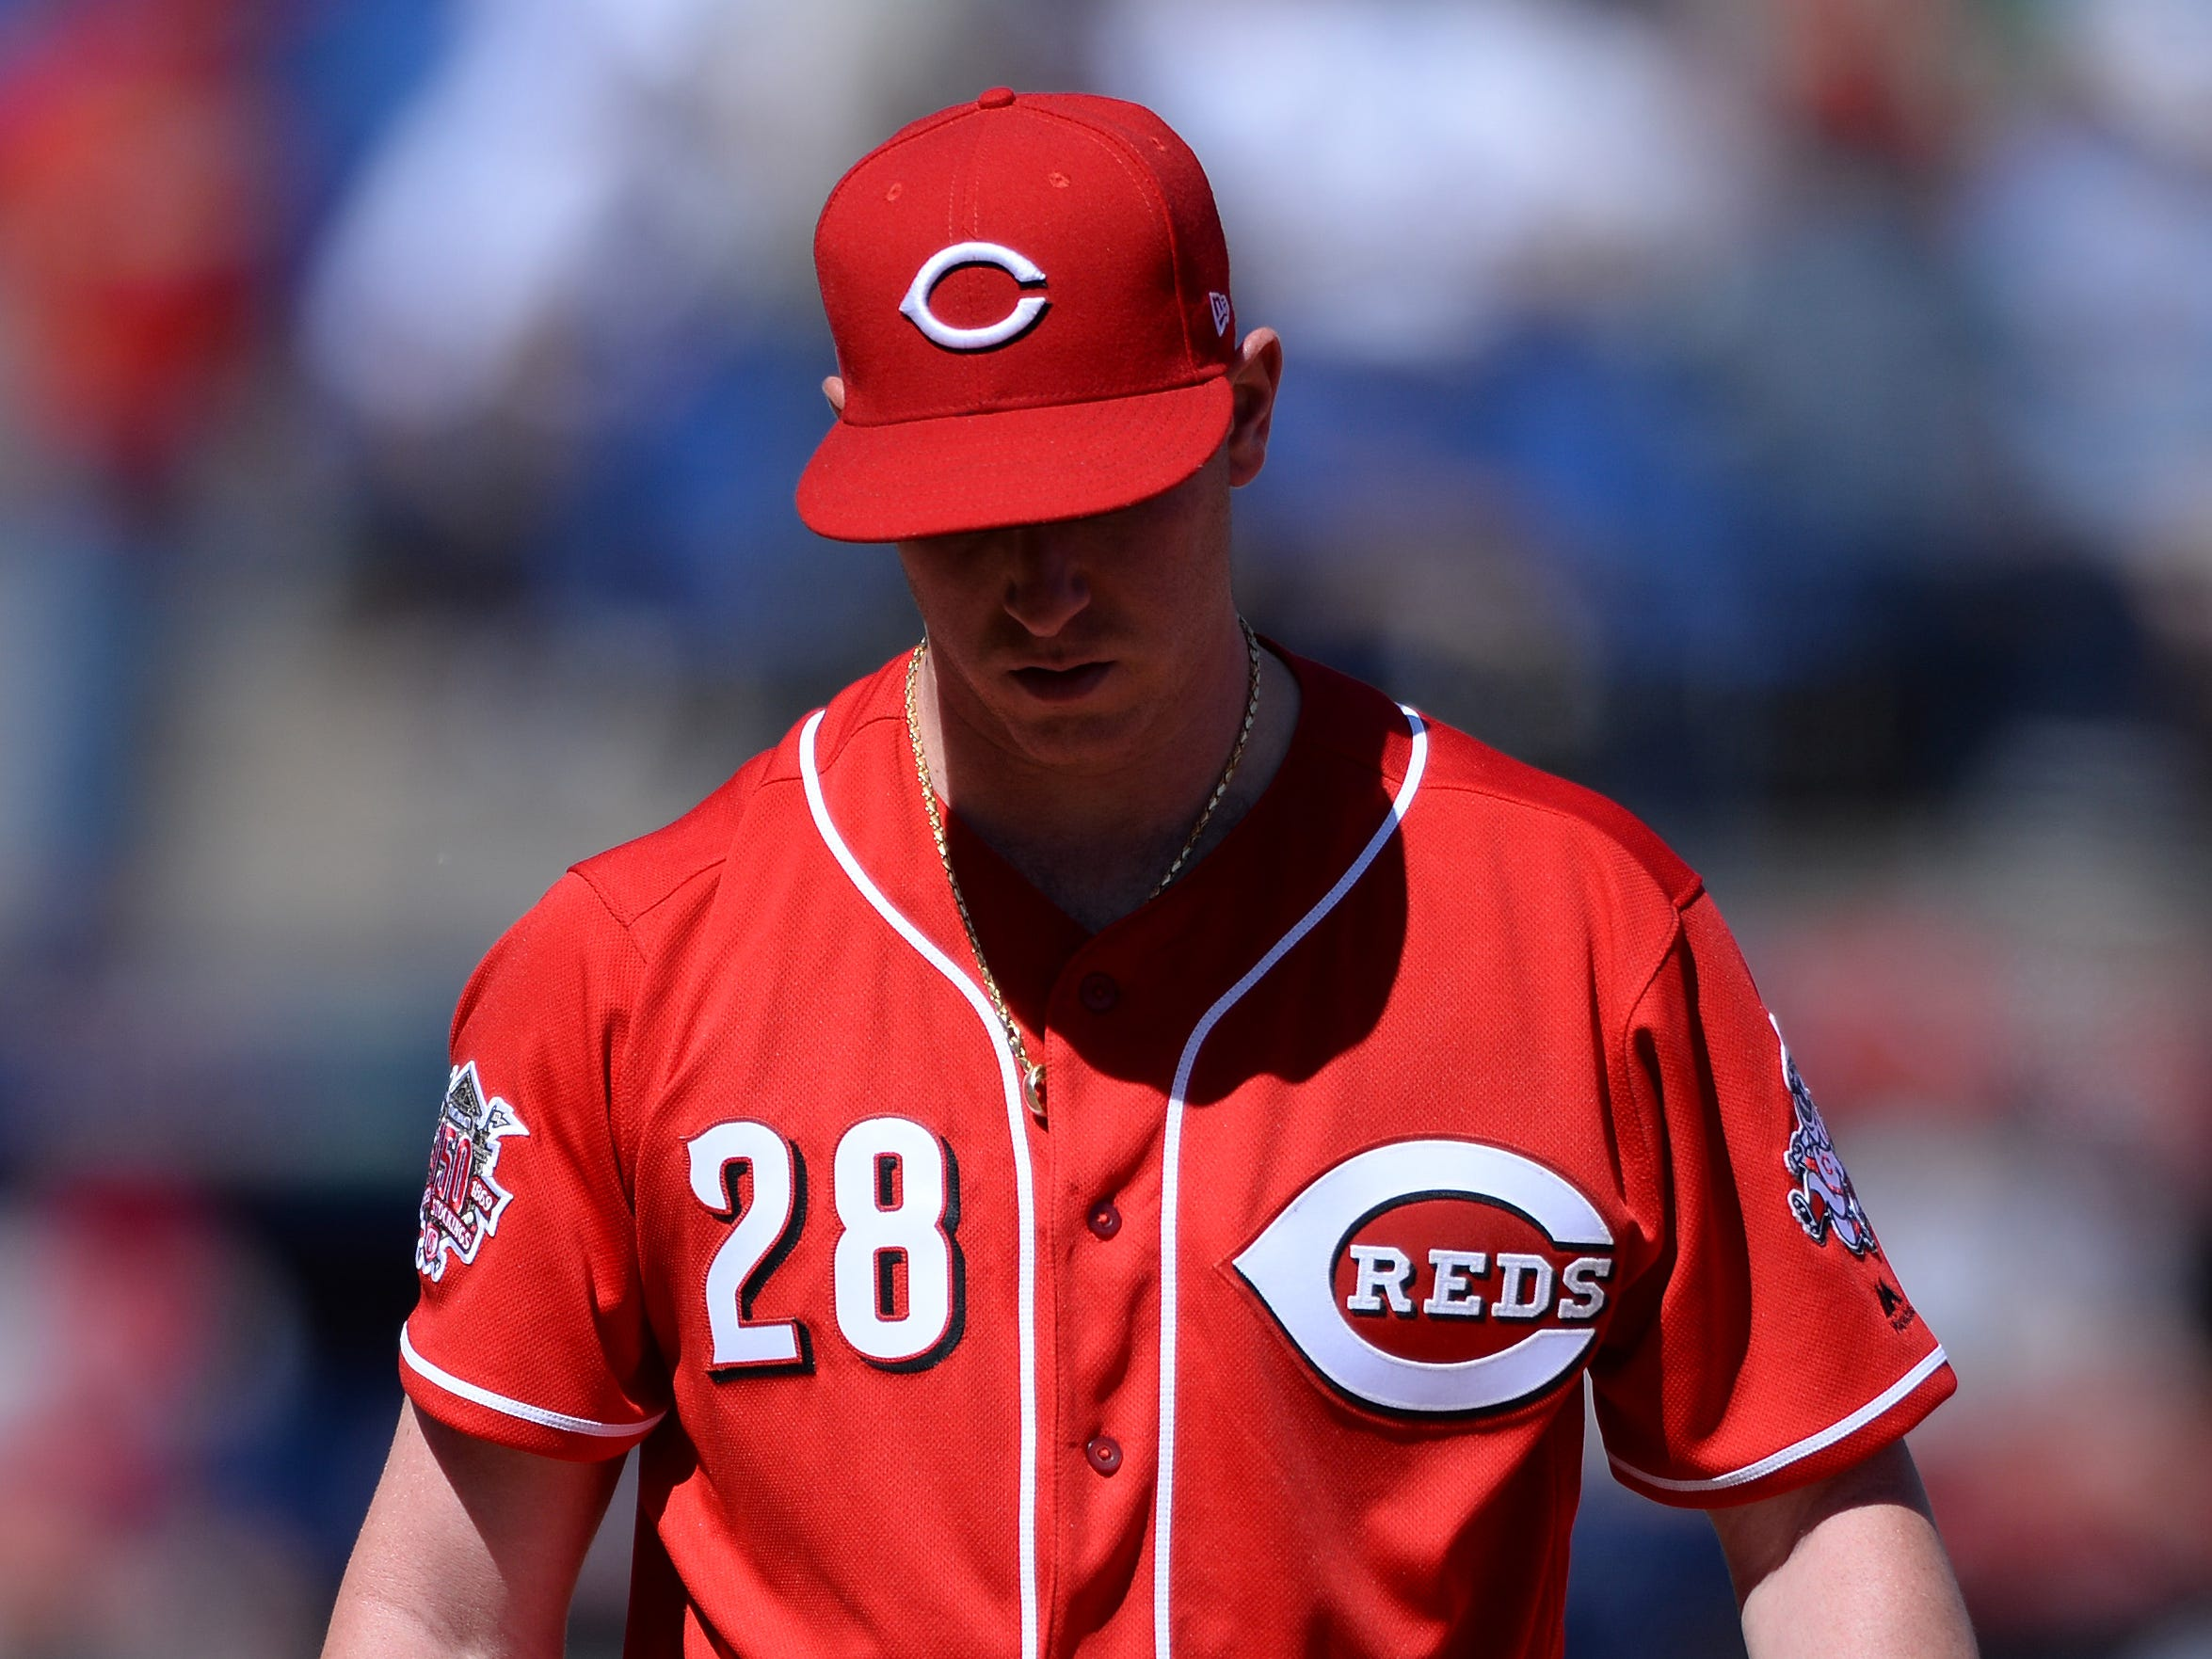 Cincinnati Reds starting pitcher Anthony DeSclafani (28) walks to the dugout after the third out of the top of the fourth inning against the St. Louis Cardinals at Estadio de Beisbol Monterrey.